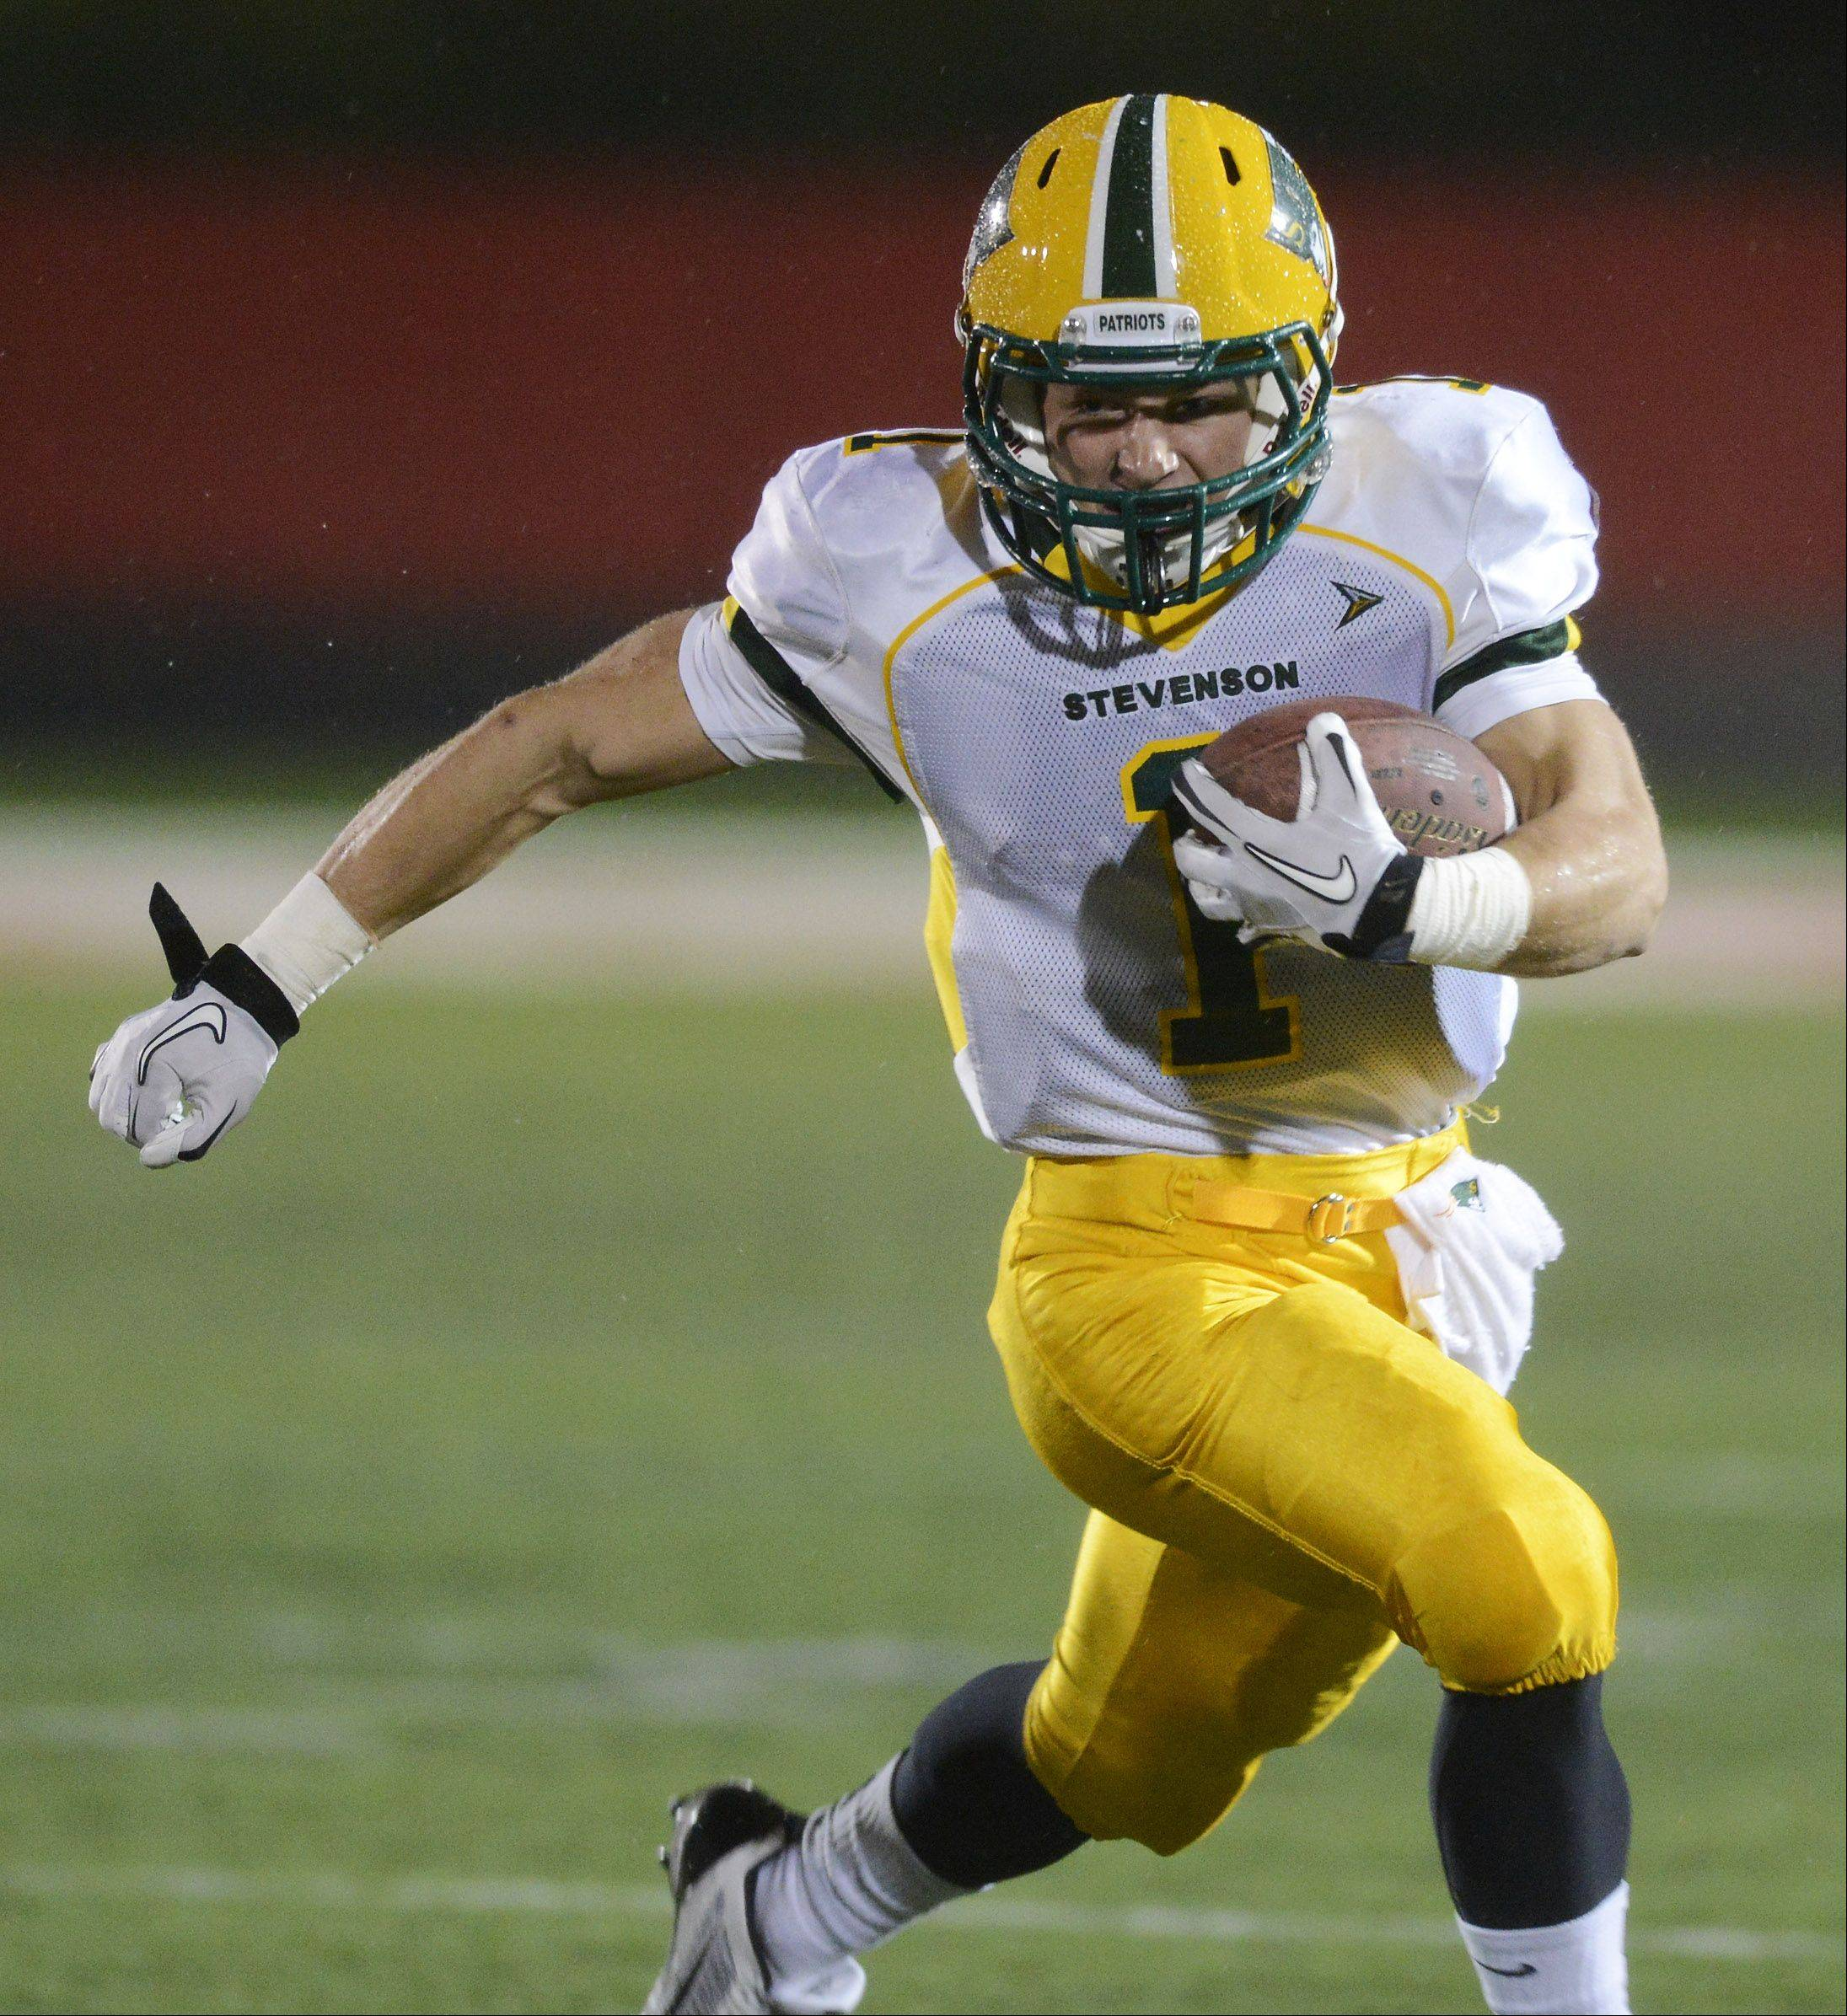 Stevenson's Conor Okmin carries the ball during Saturday's Class 8A playoff game against Barrington.